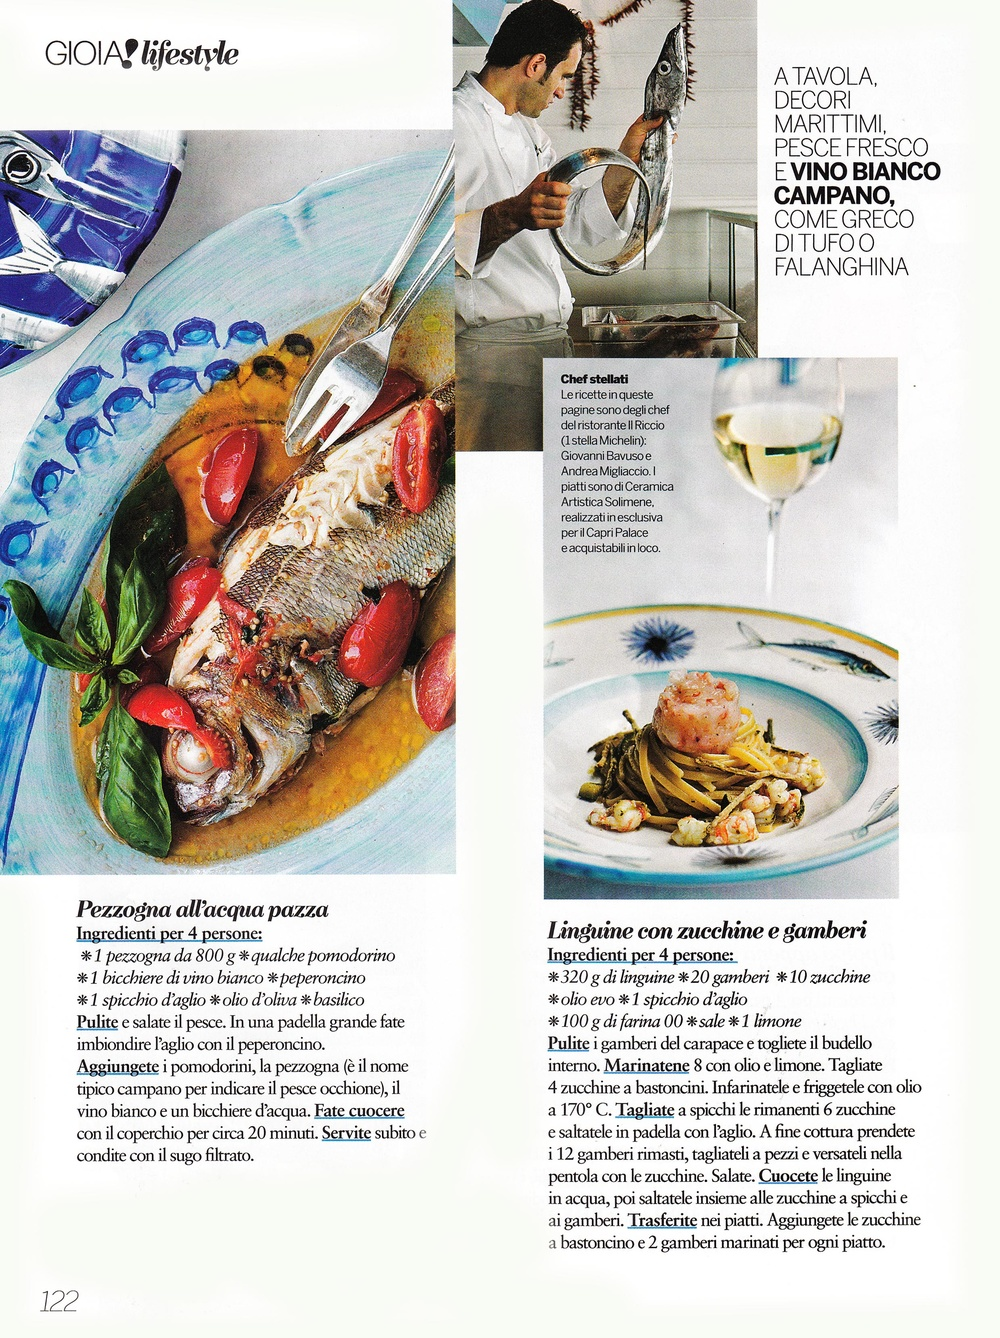 Stefano Scatà Food Lifestyle and Interiors photographer - GIOIA Agosto 2018